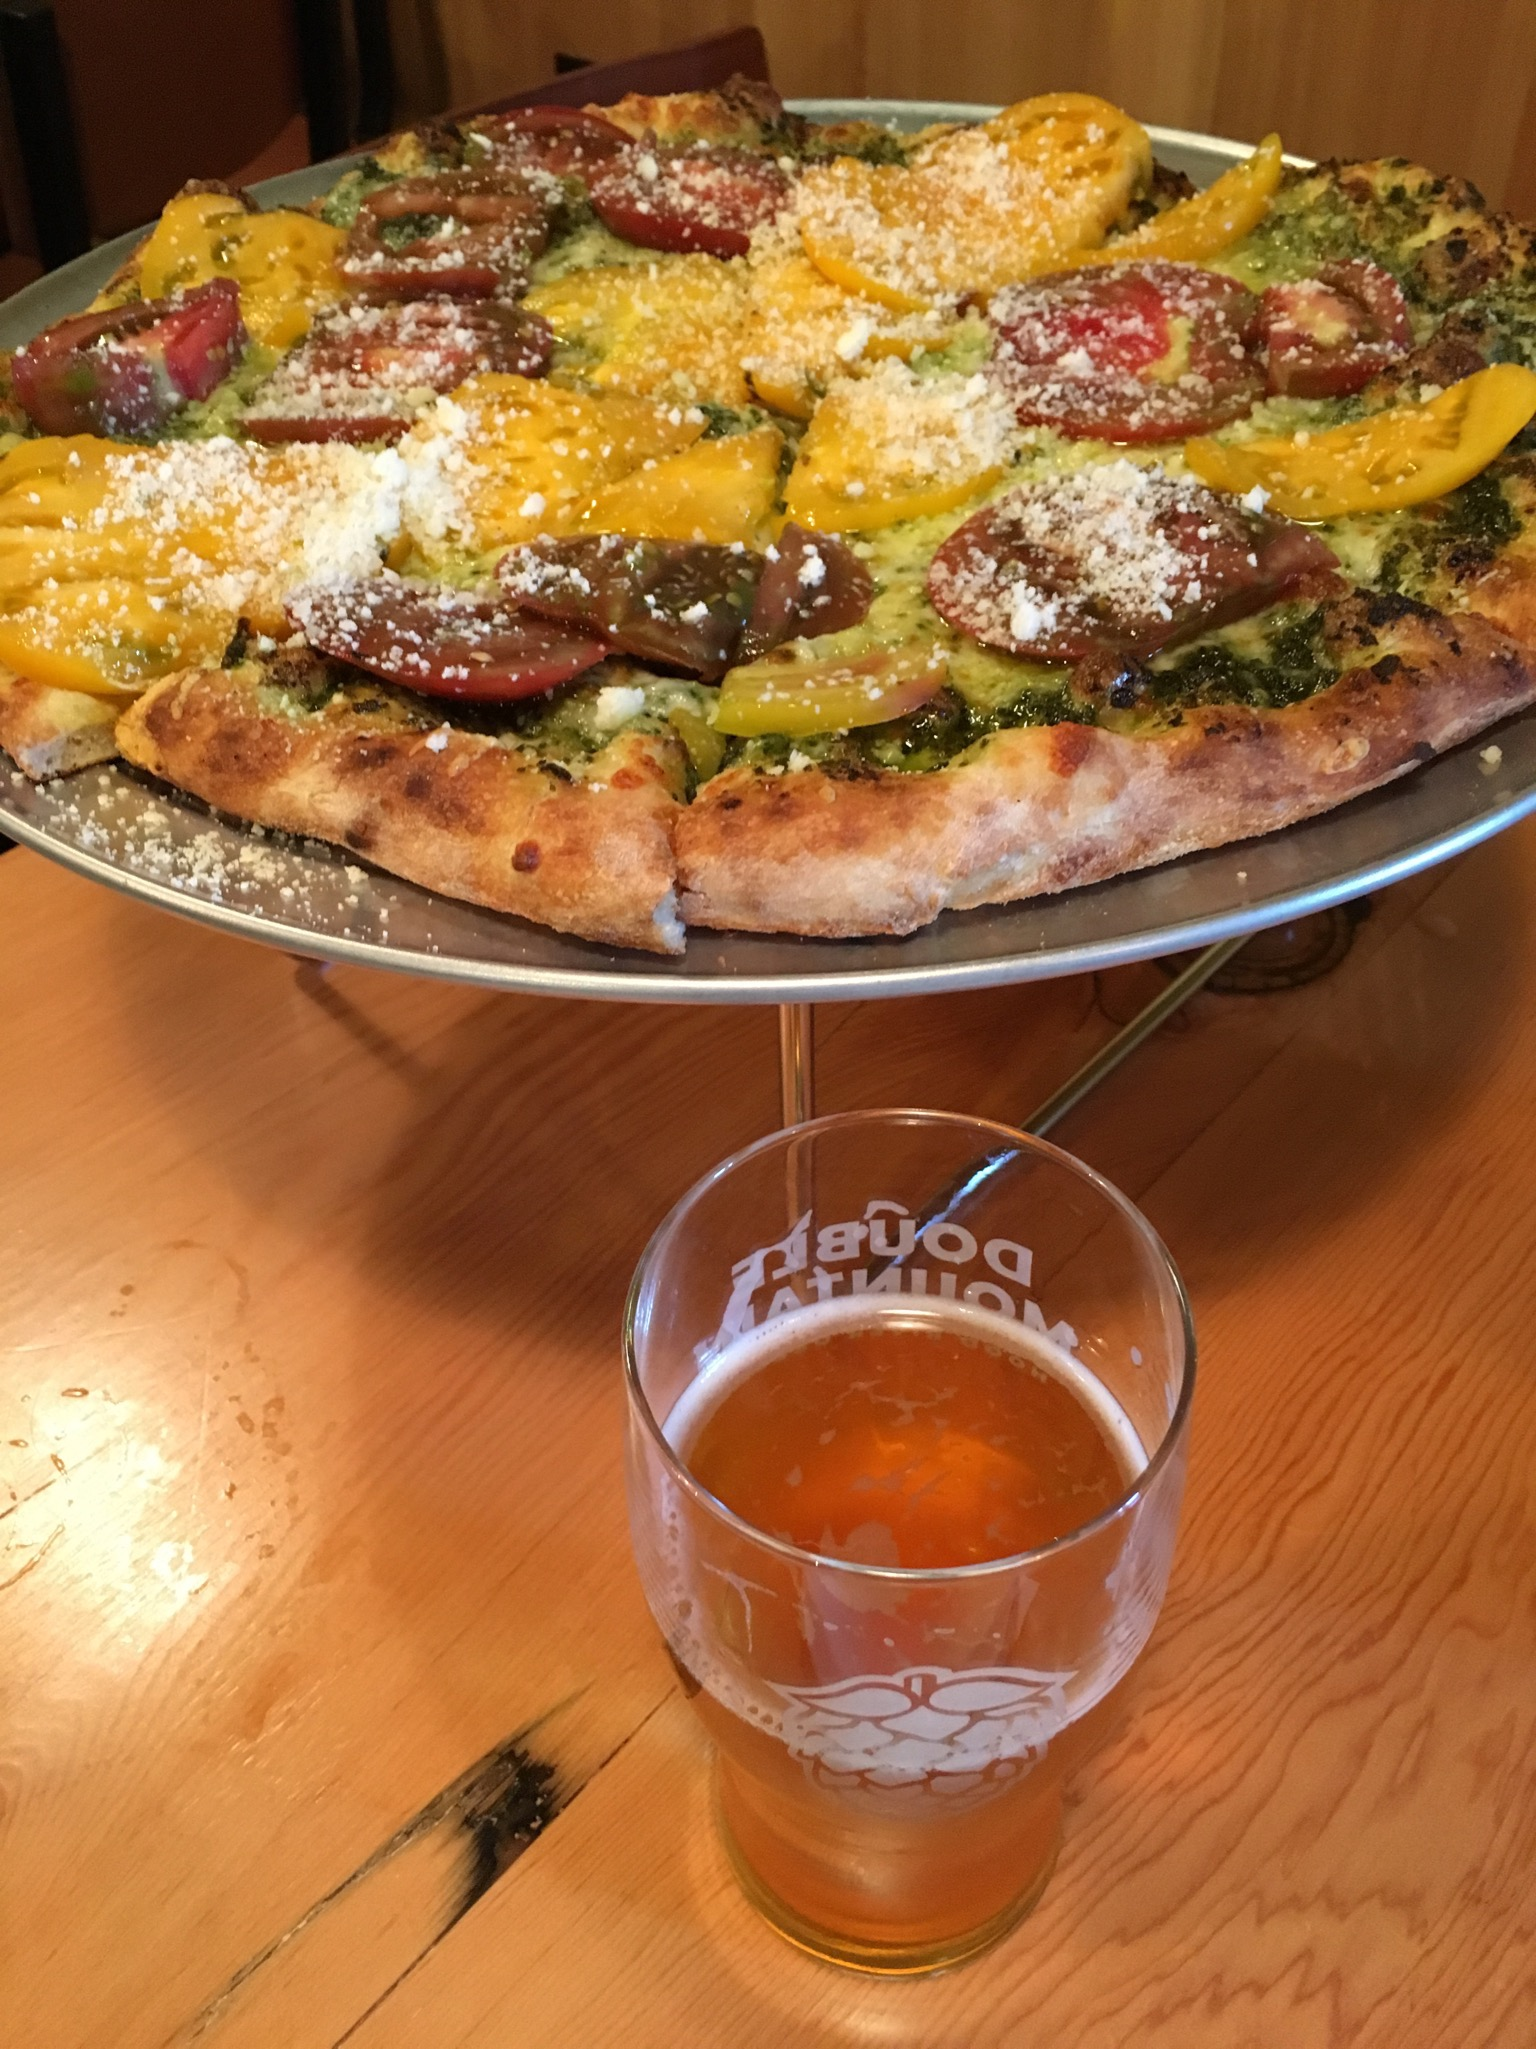 Double Mountain Taproom in season Heirloom Pie. (photo by Cat Stelzer)